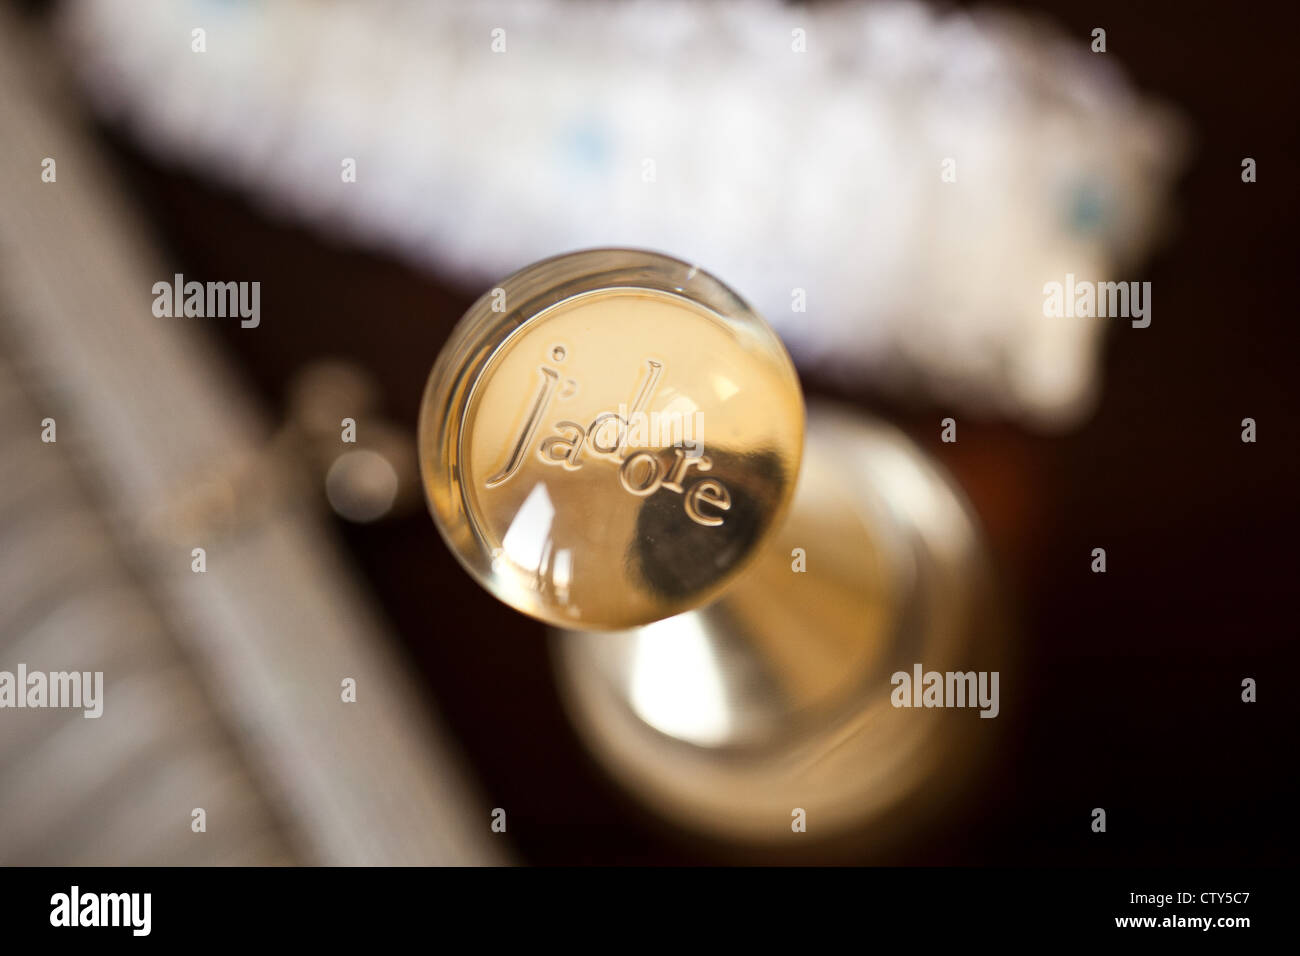 J'adore perfume bottle - Stock Image